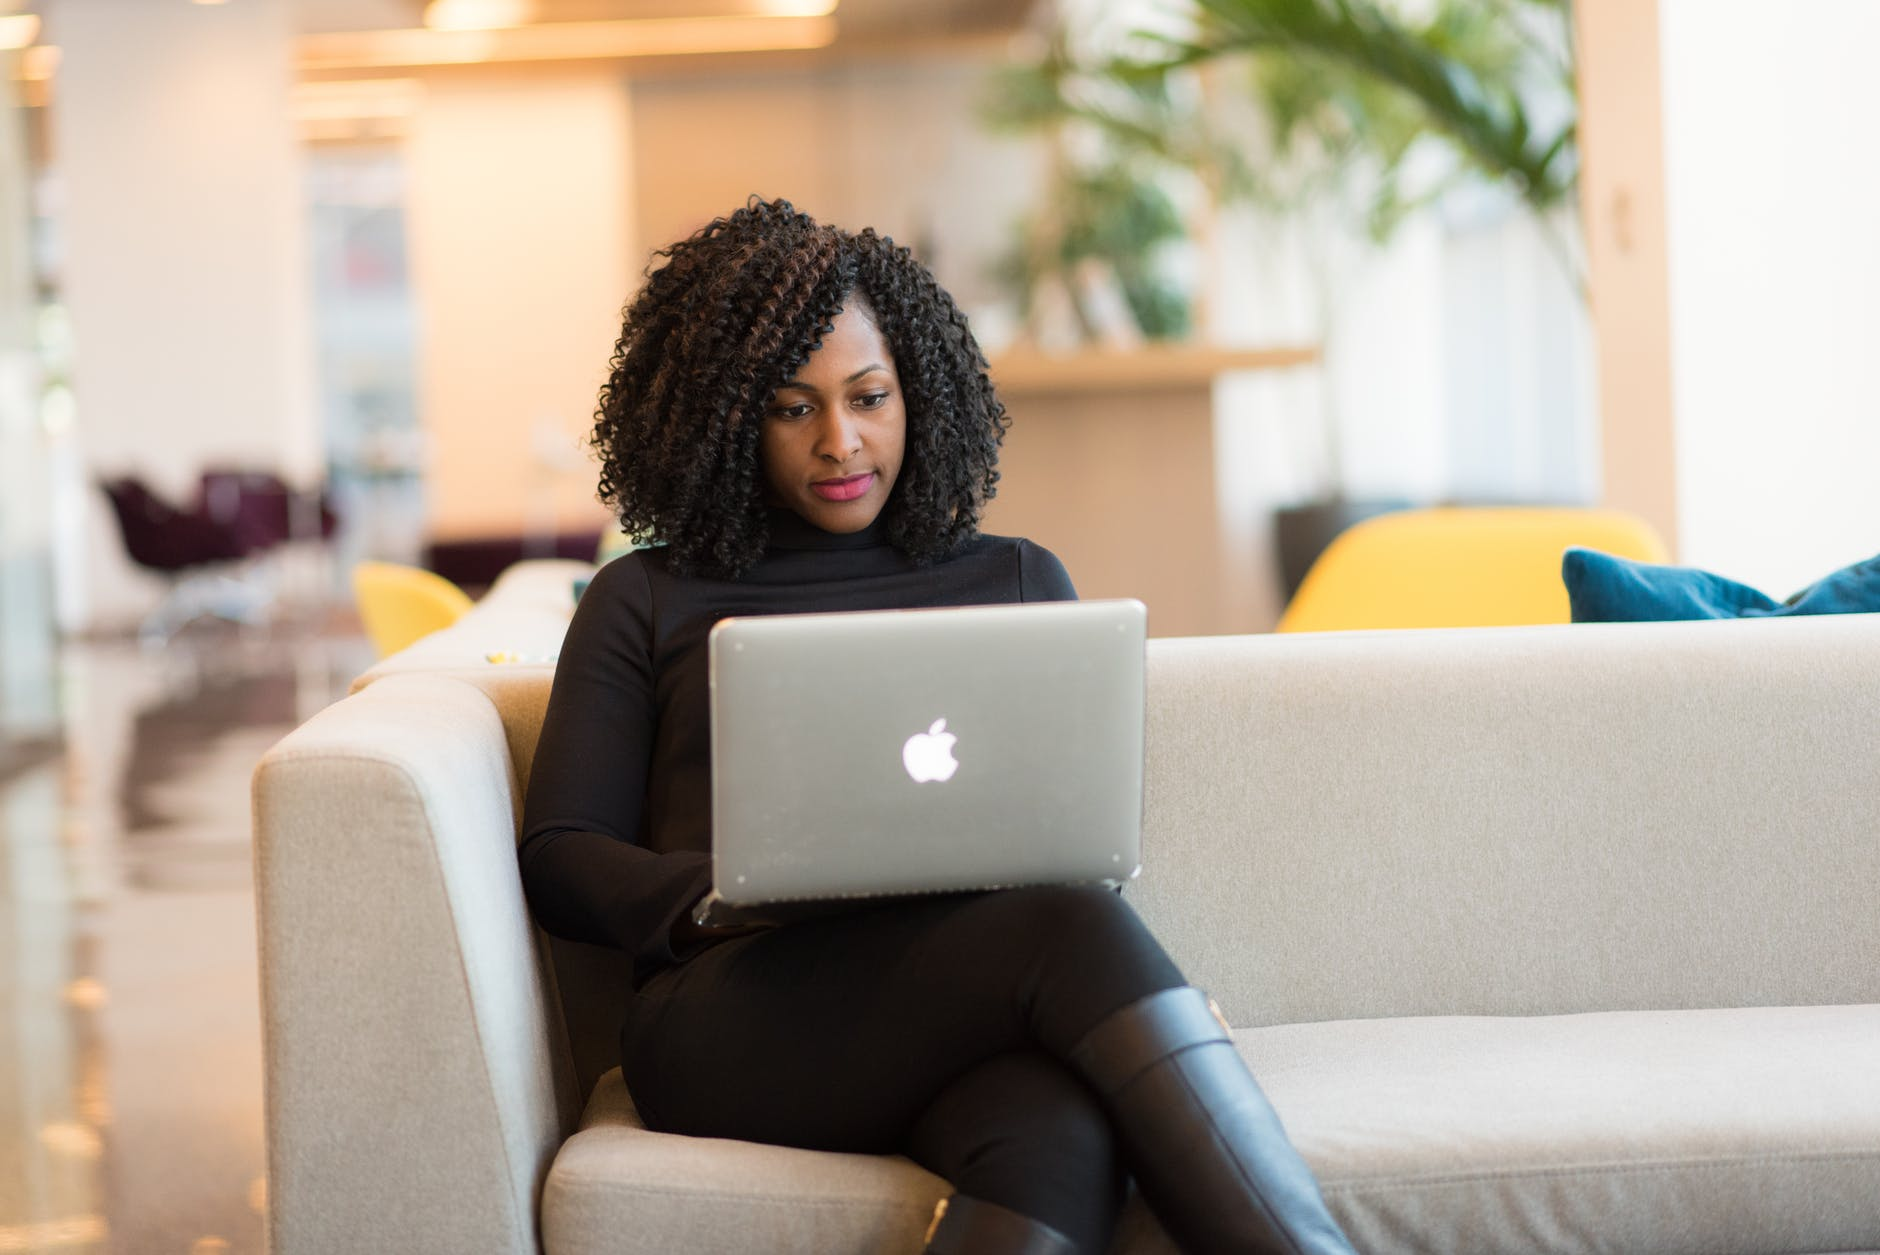 Woman sitting on a sofa and using her laptop   Source: Pexels